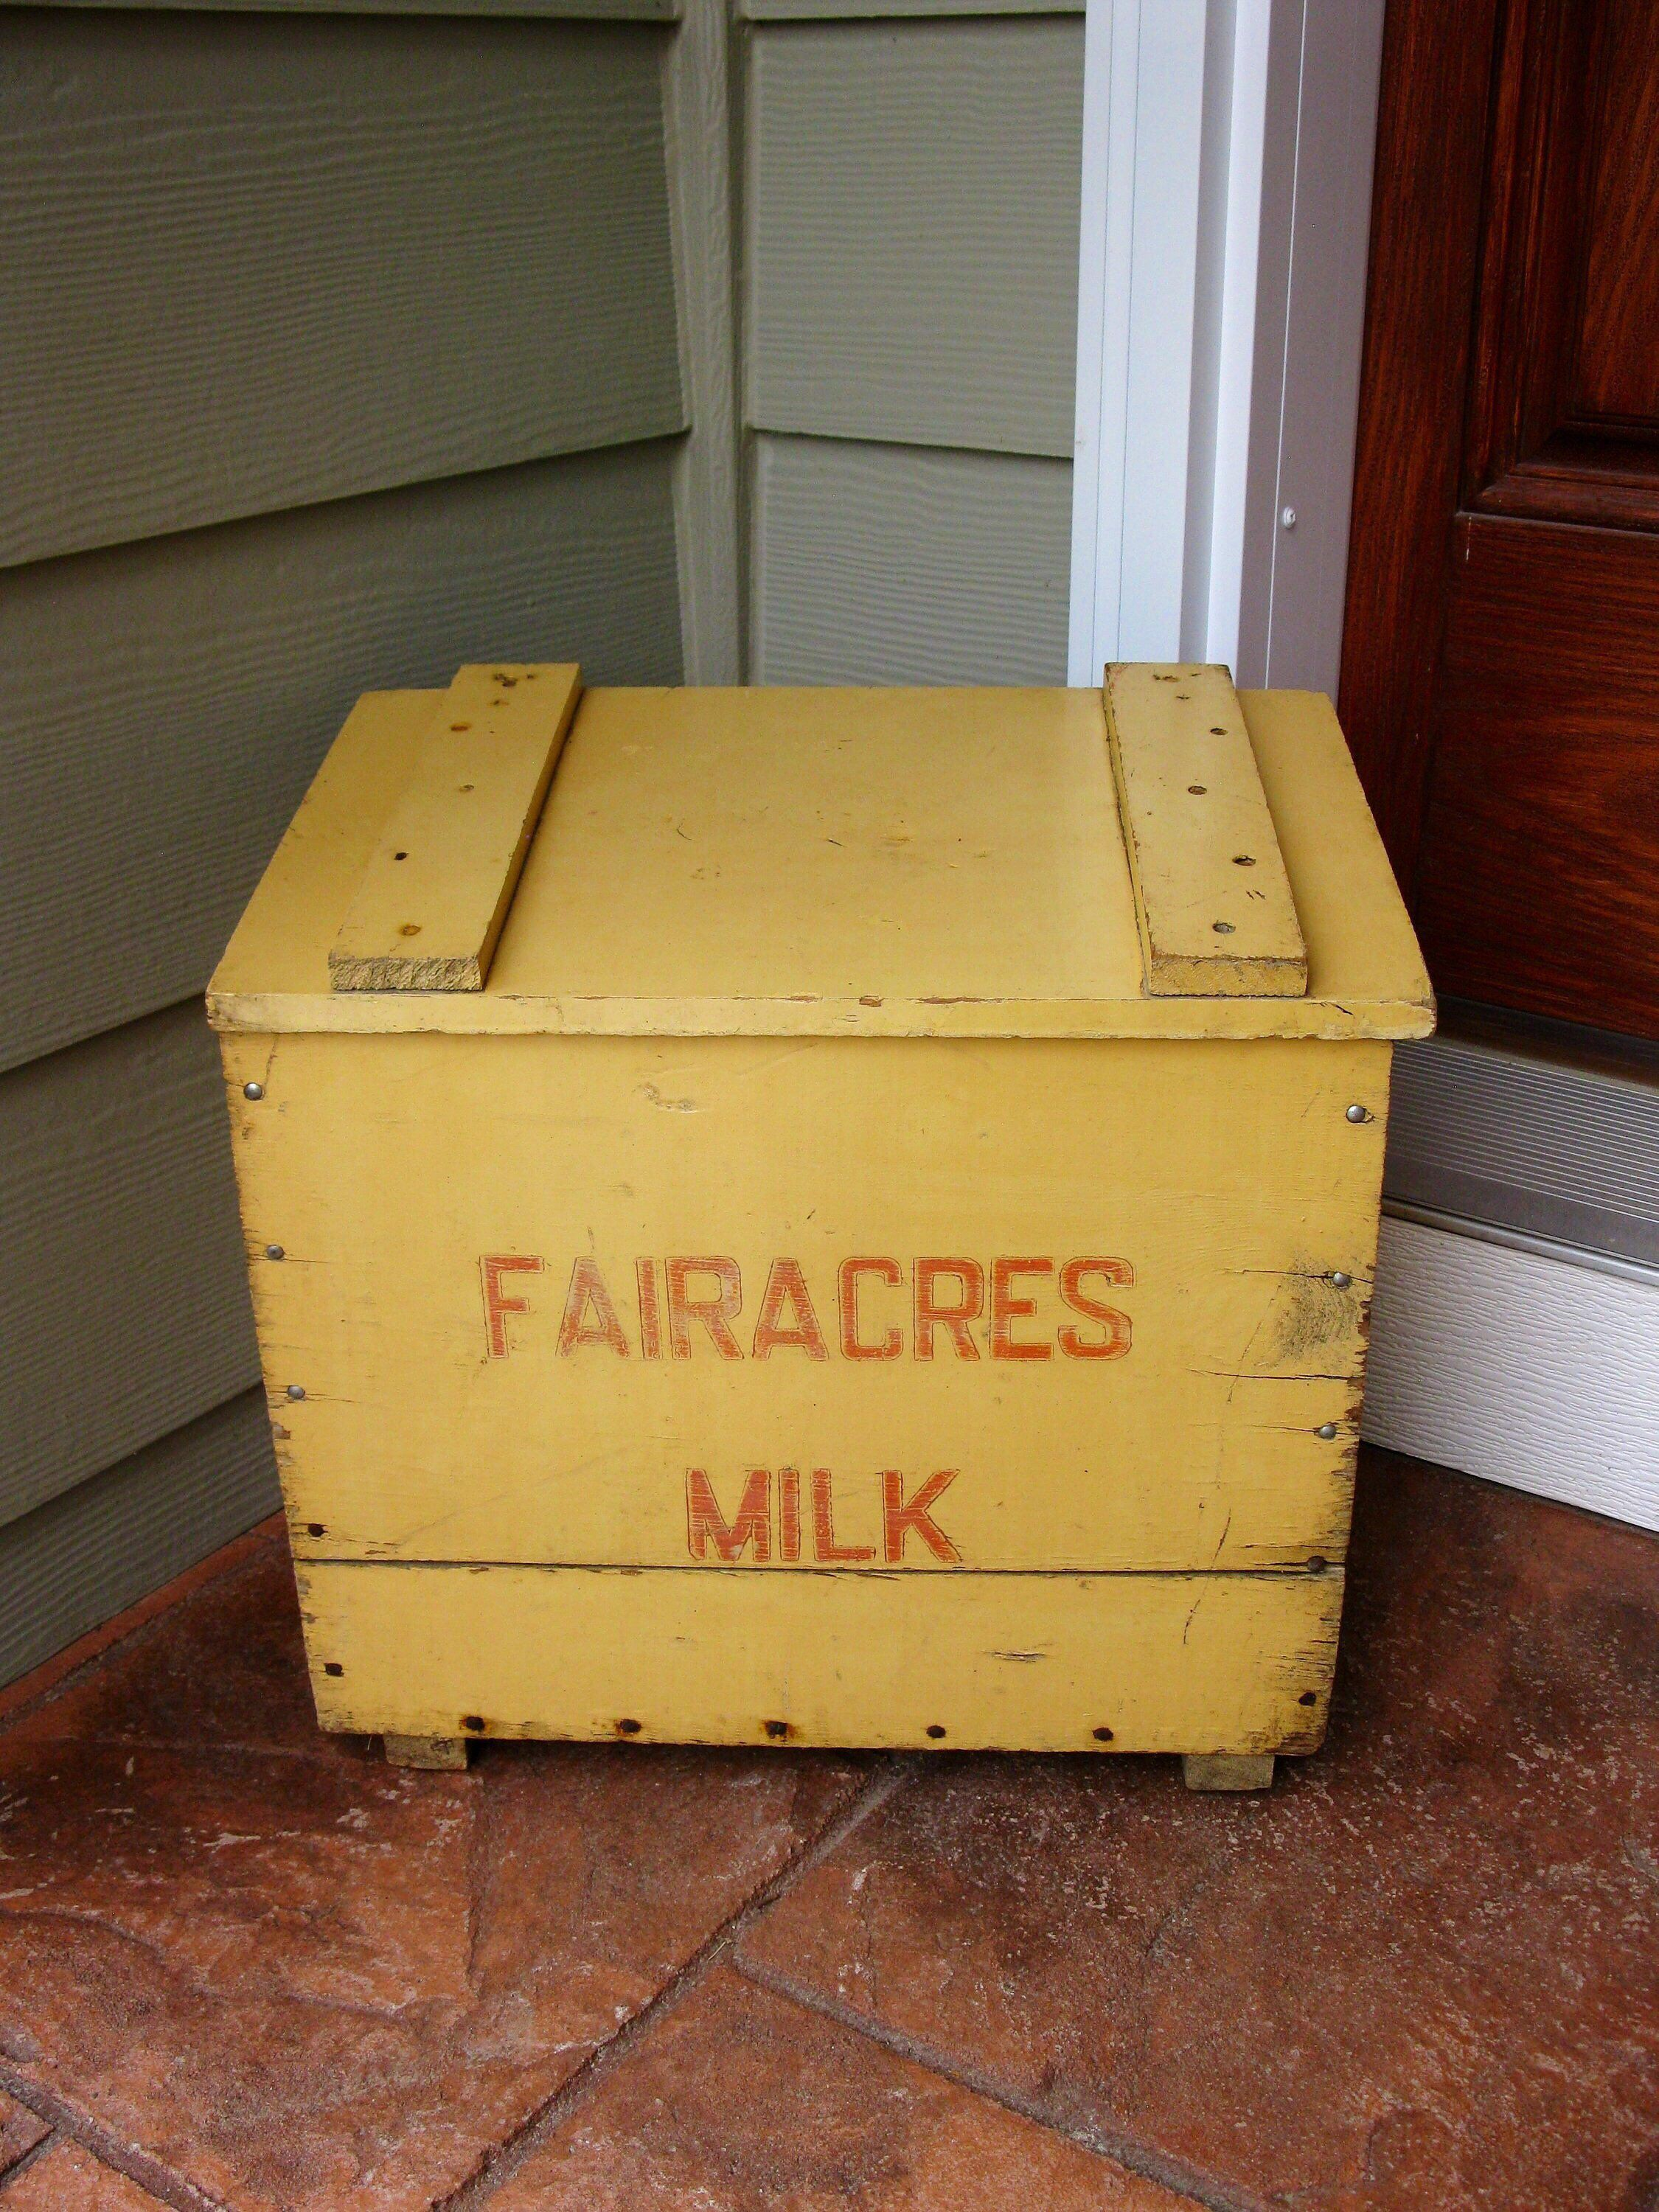 Excited To Share This Item From My Etsy 1969 Fairacres Milk Box Solid Wood Porch Home Delivery Advertising Vintage